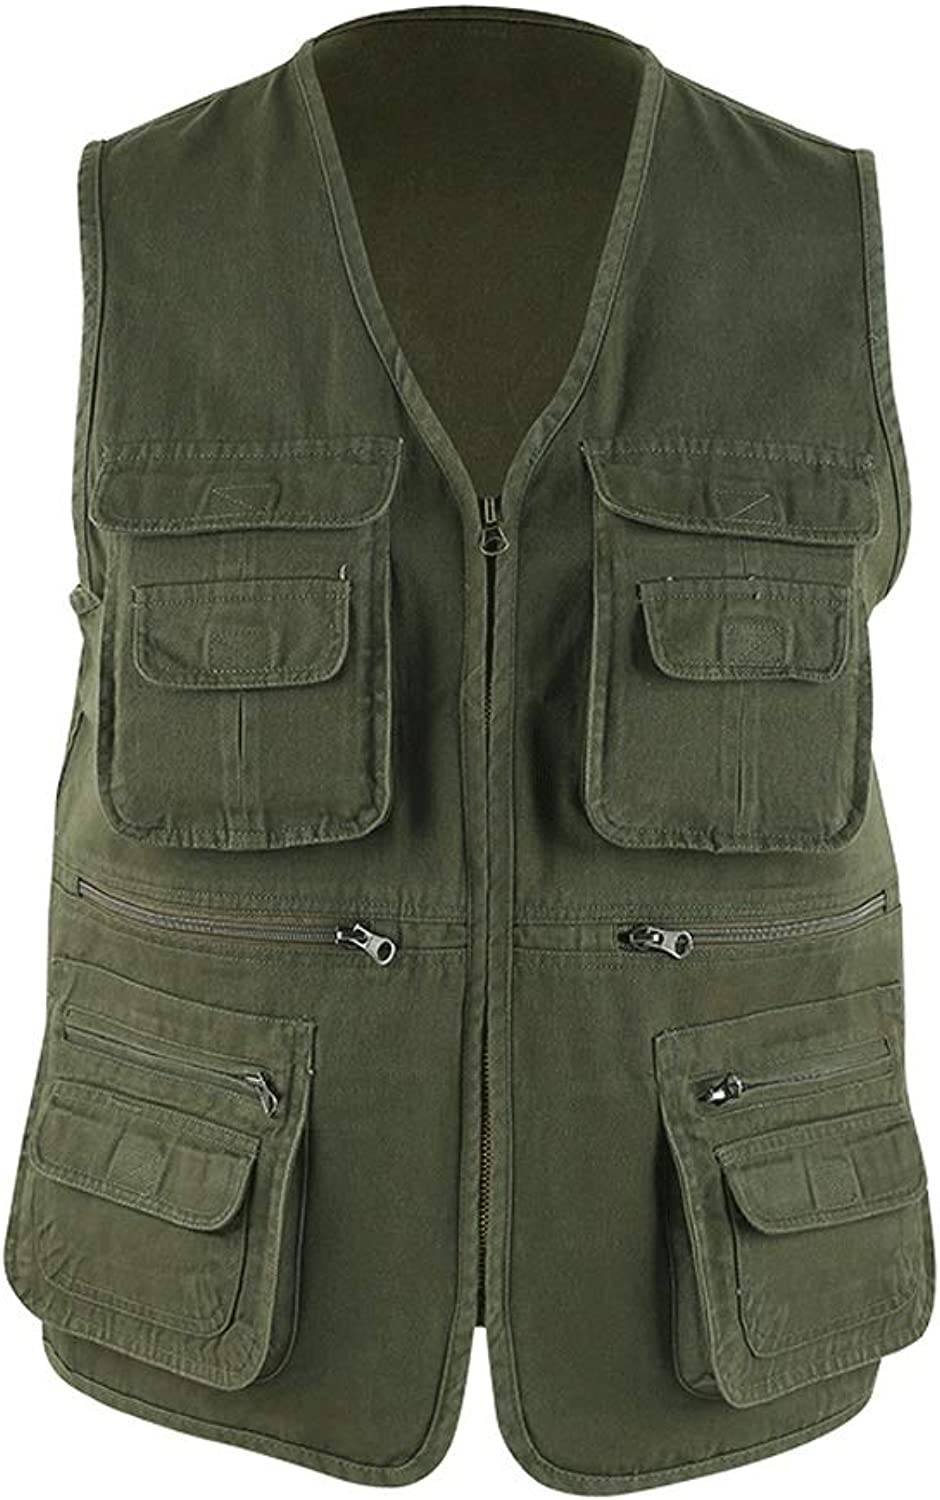 Tooling Vest Cotton Fabrics Photography Fishing Vest Multi-Pocket Vest Multifunctional Vest Spring and Summer Vest (color   Green, Size   2XL)